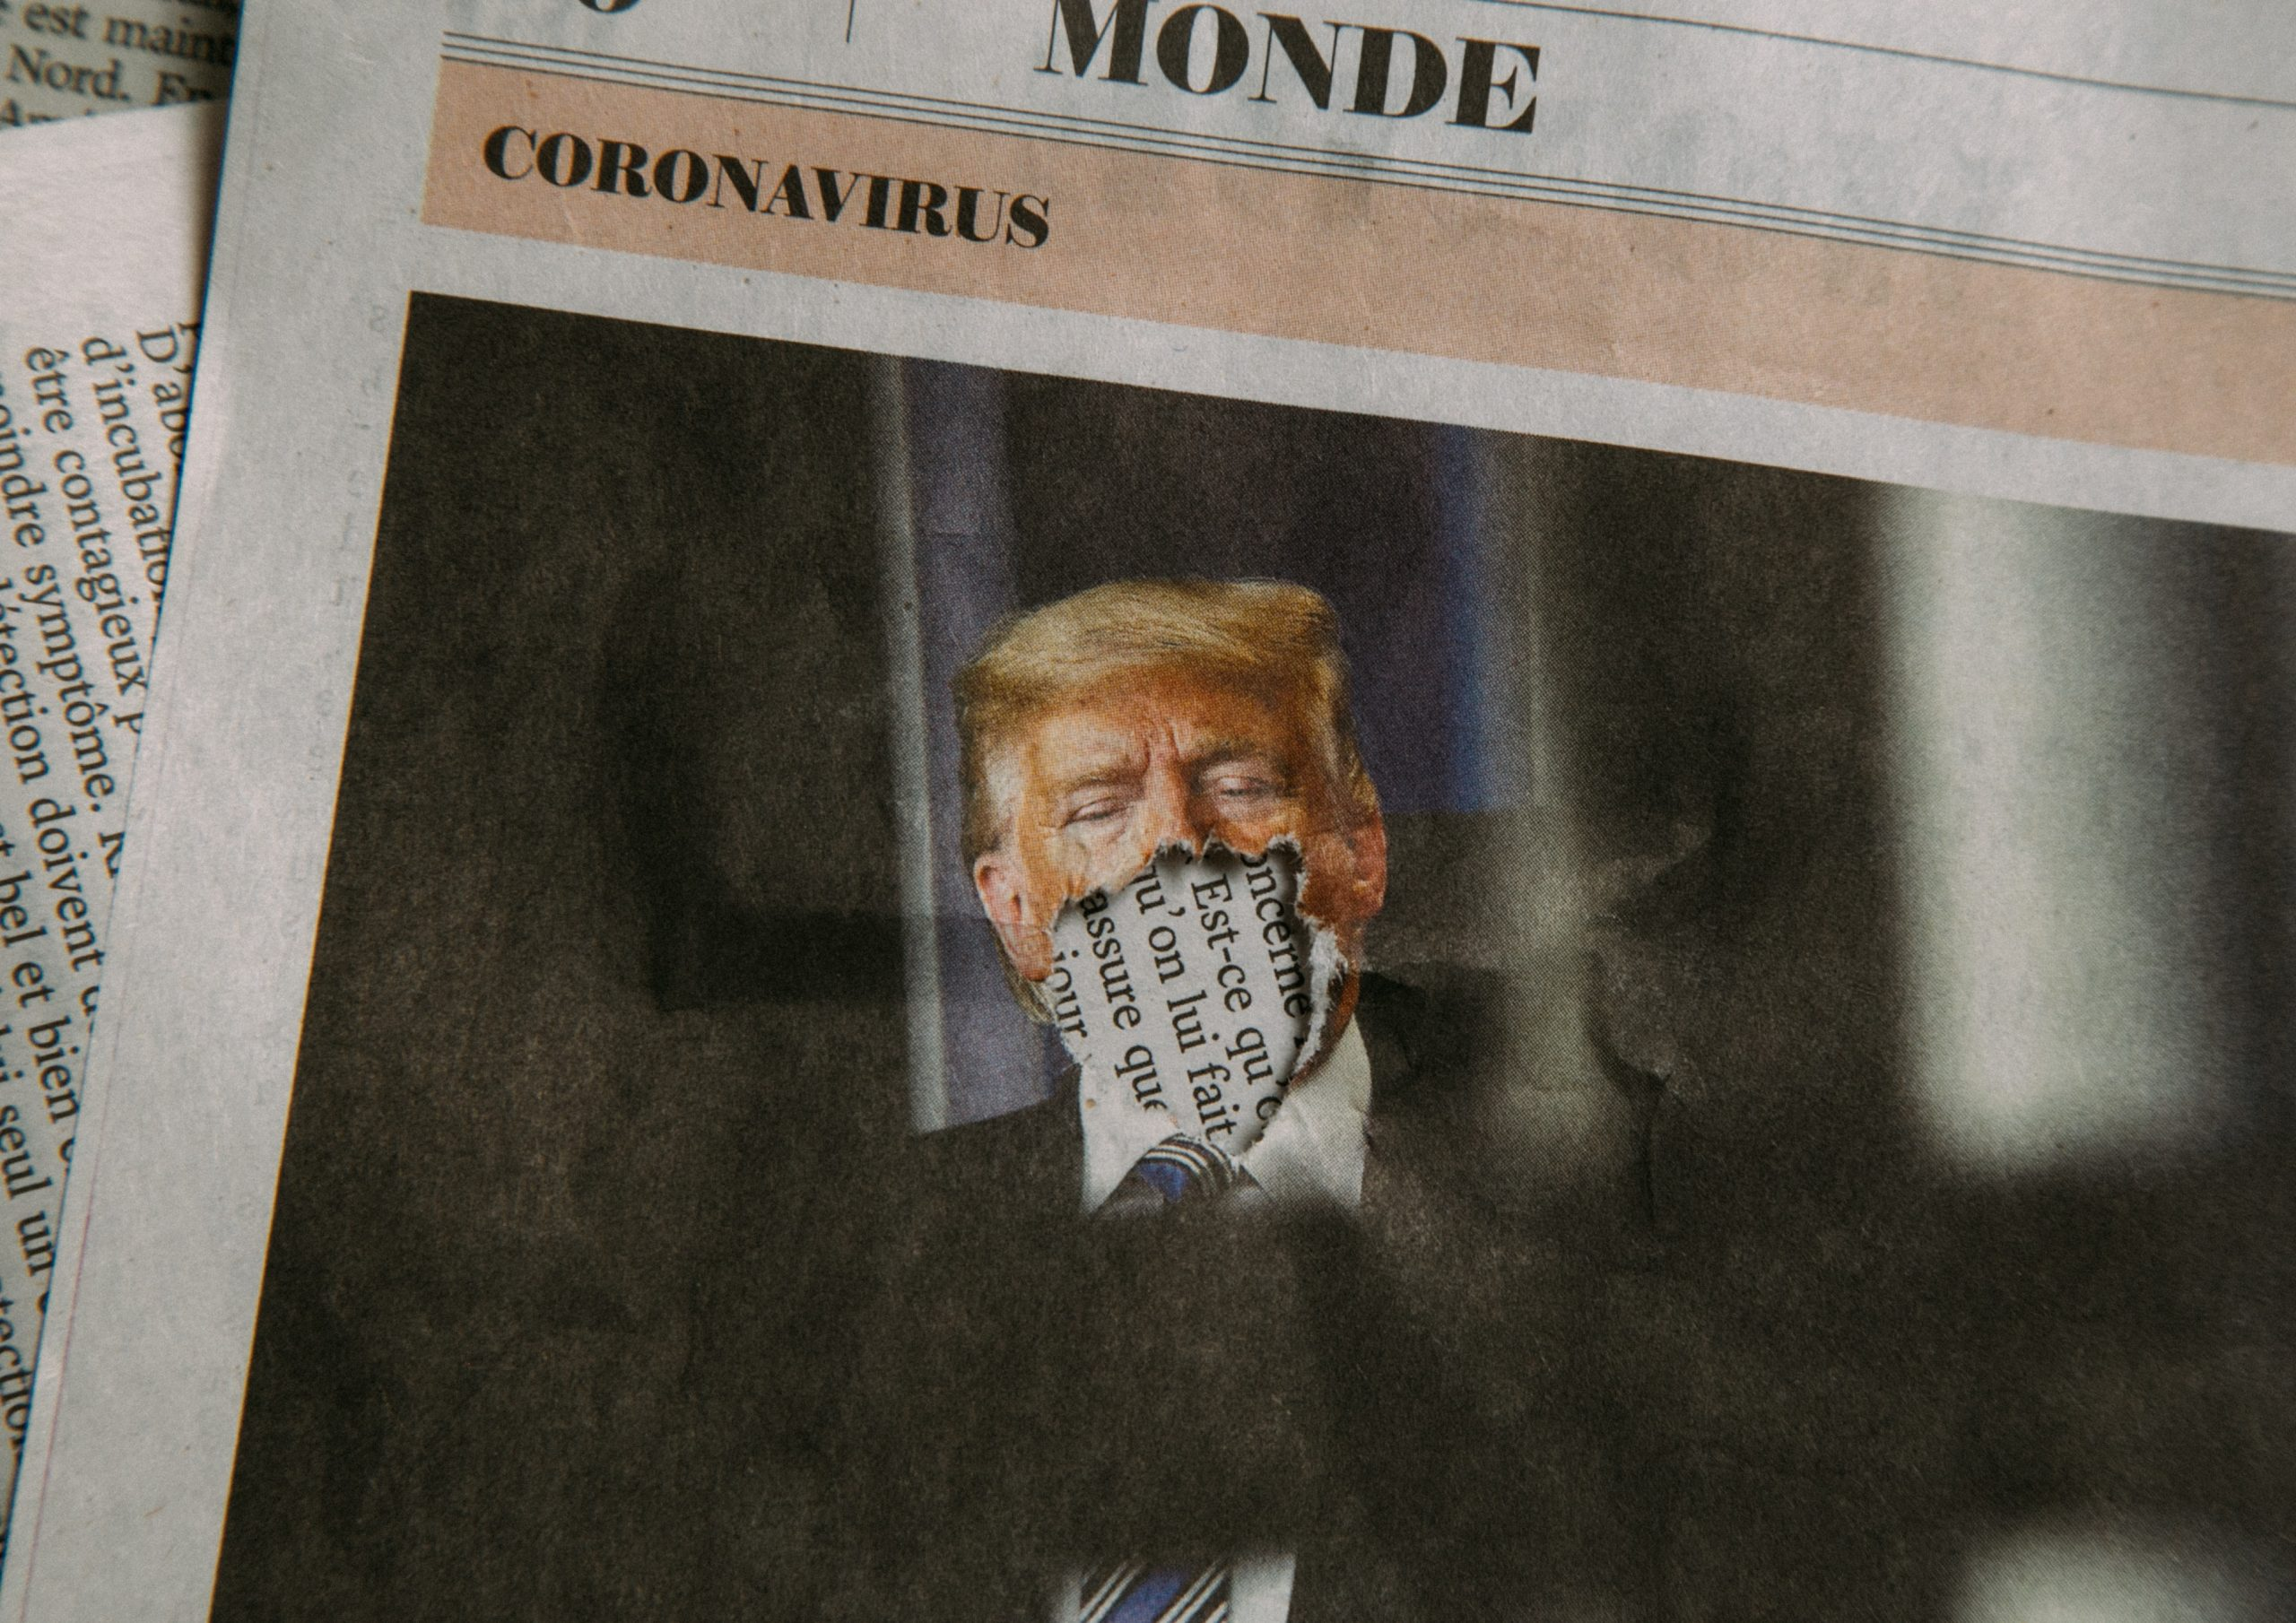 newspaper image of trump